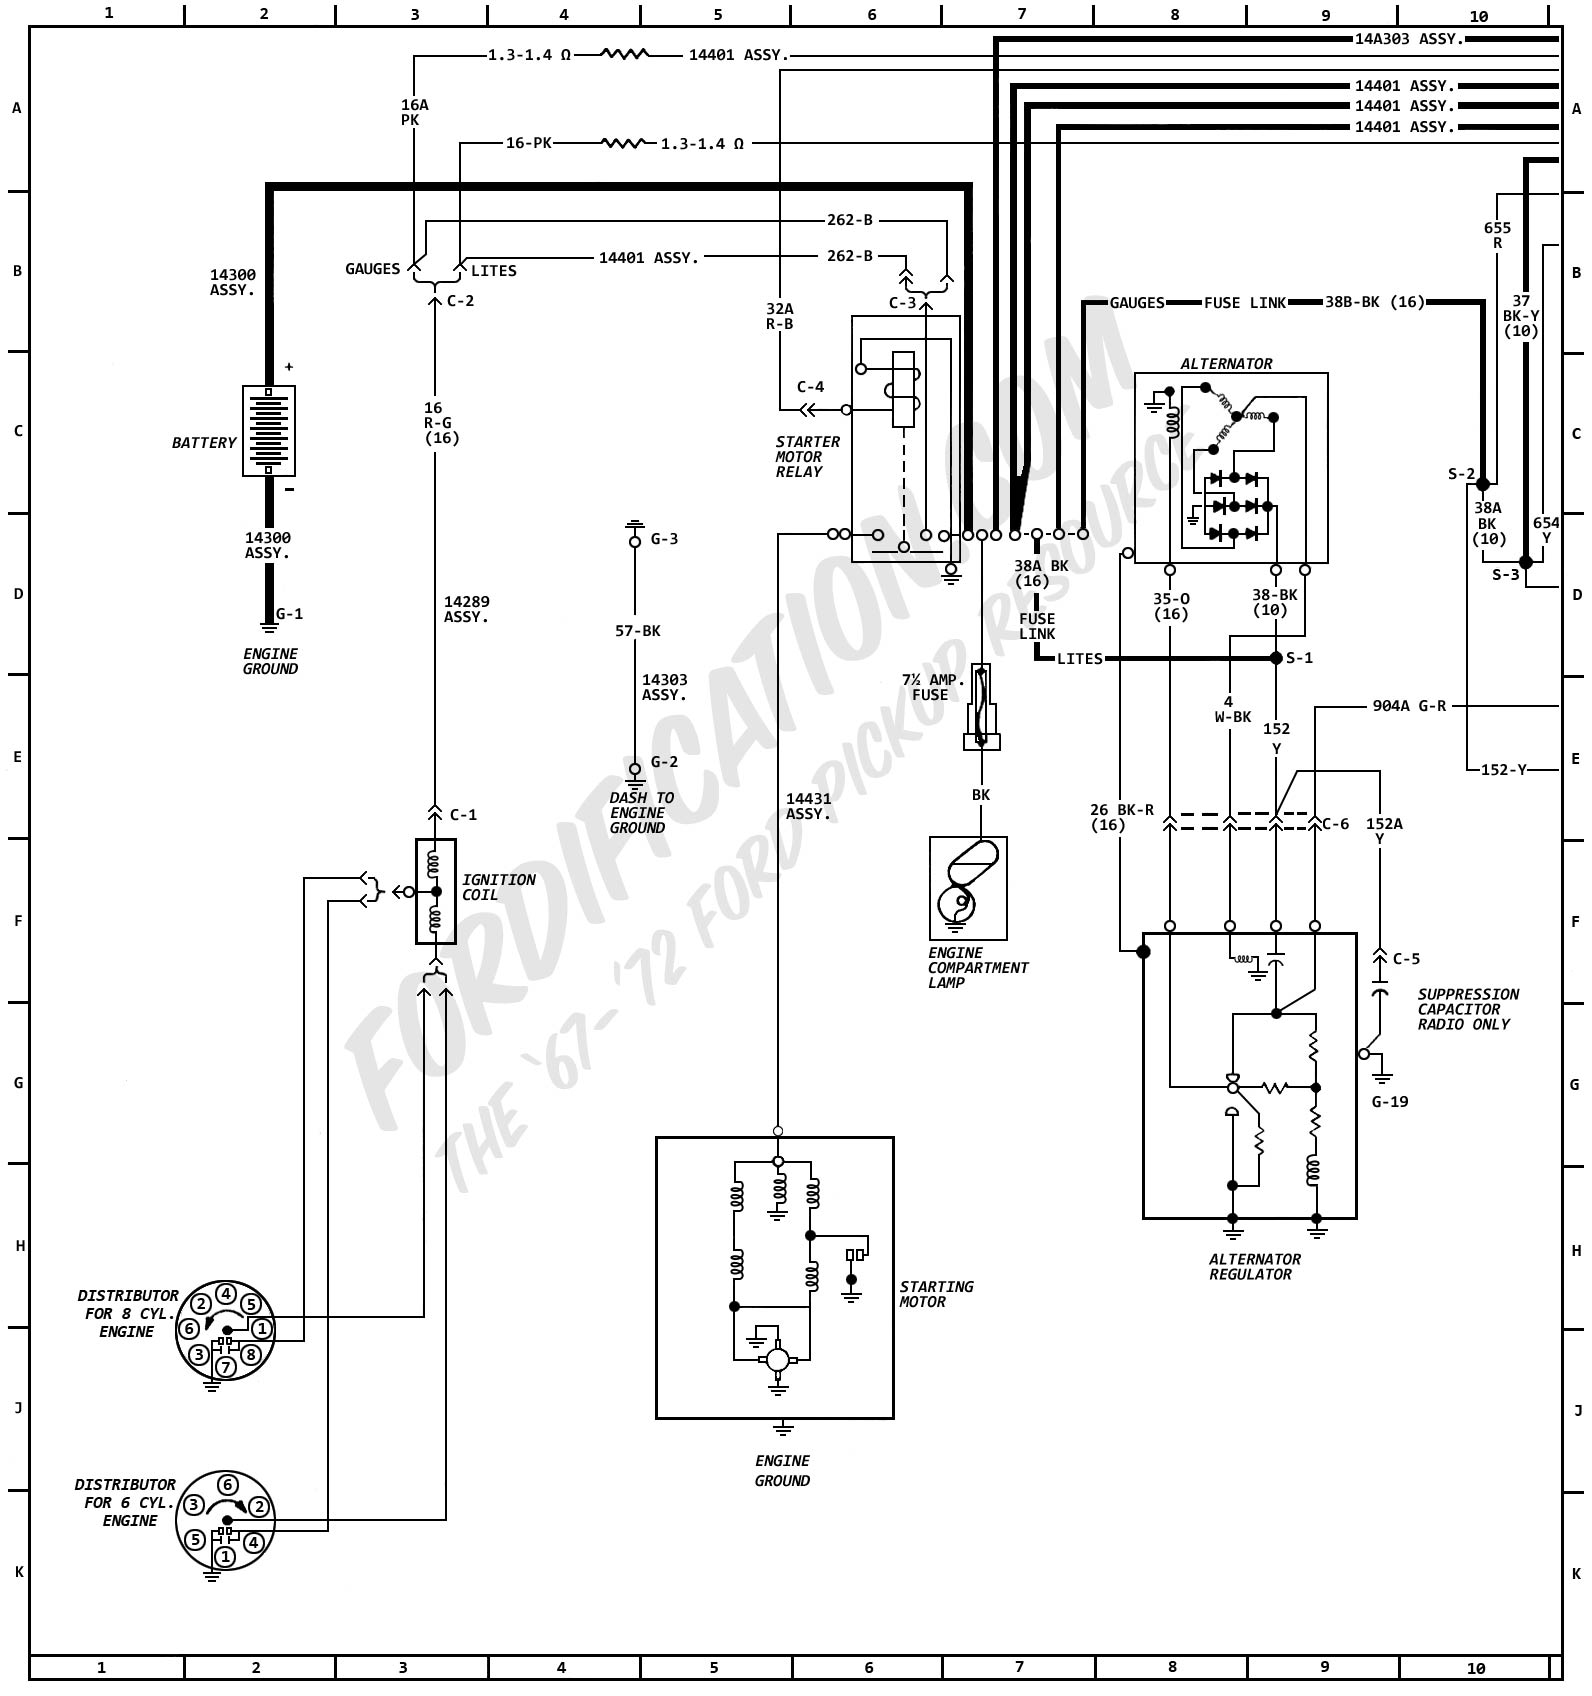 1972MasterWiring_01 1972 ford truck wiring diagrams fordification com Ford Wiring Harness Diagrams at reclaimingppi.co